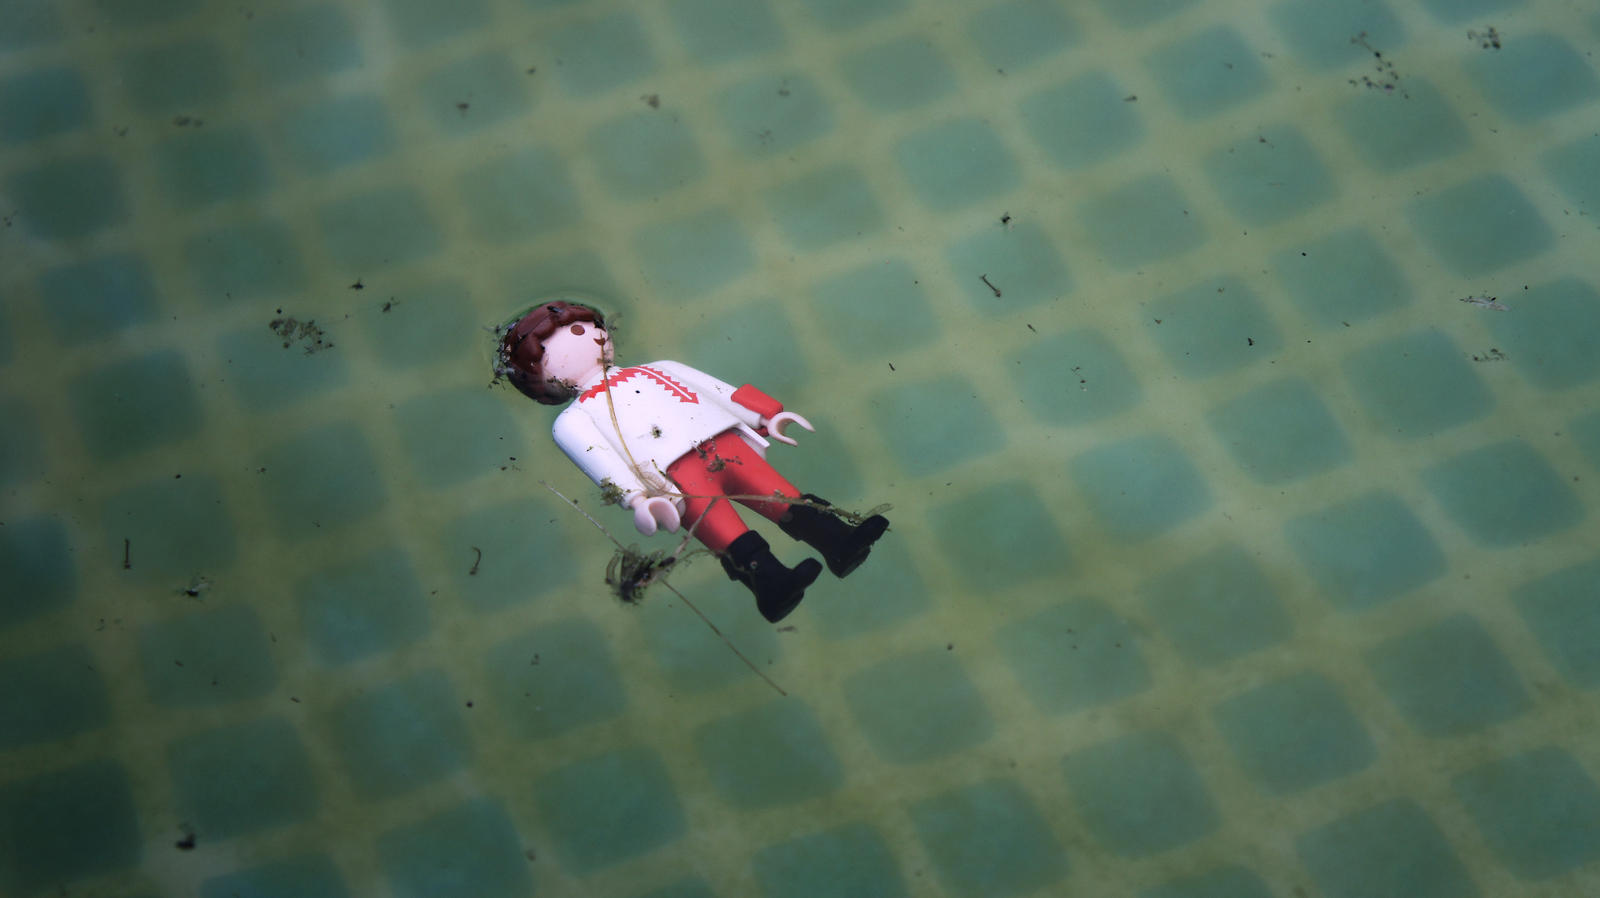 Playmobil piscine by extremraym on deviantart for Piscine playmobil